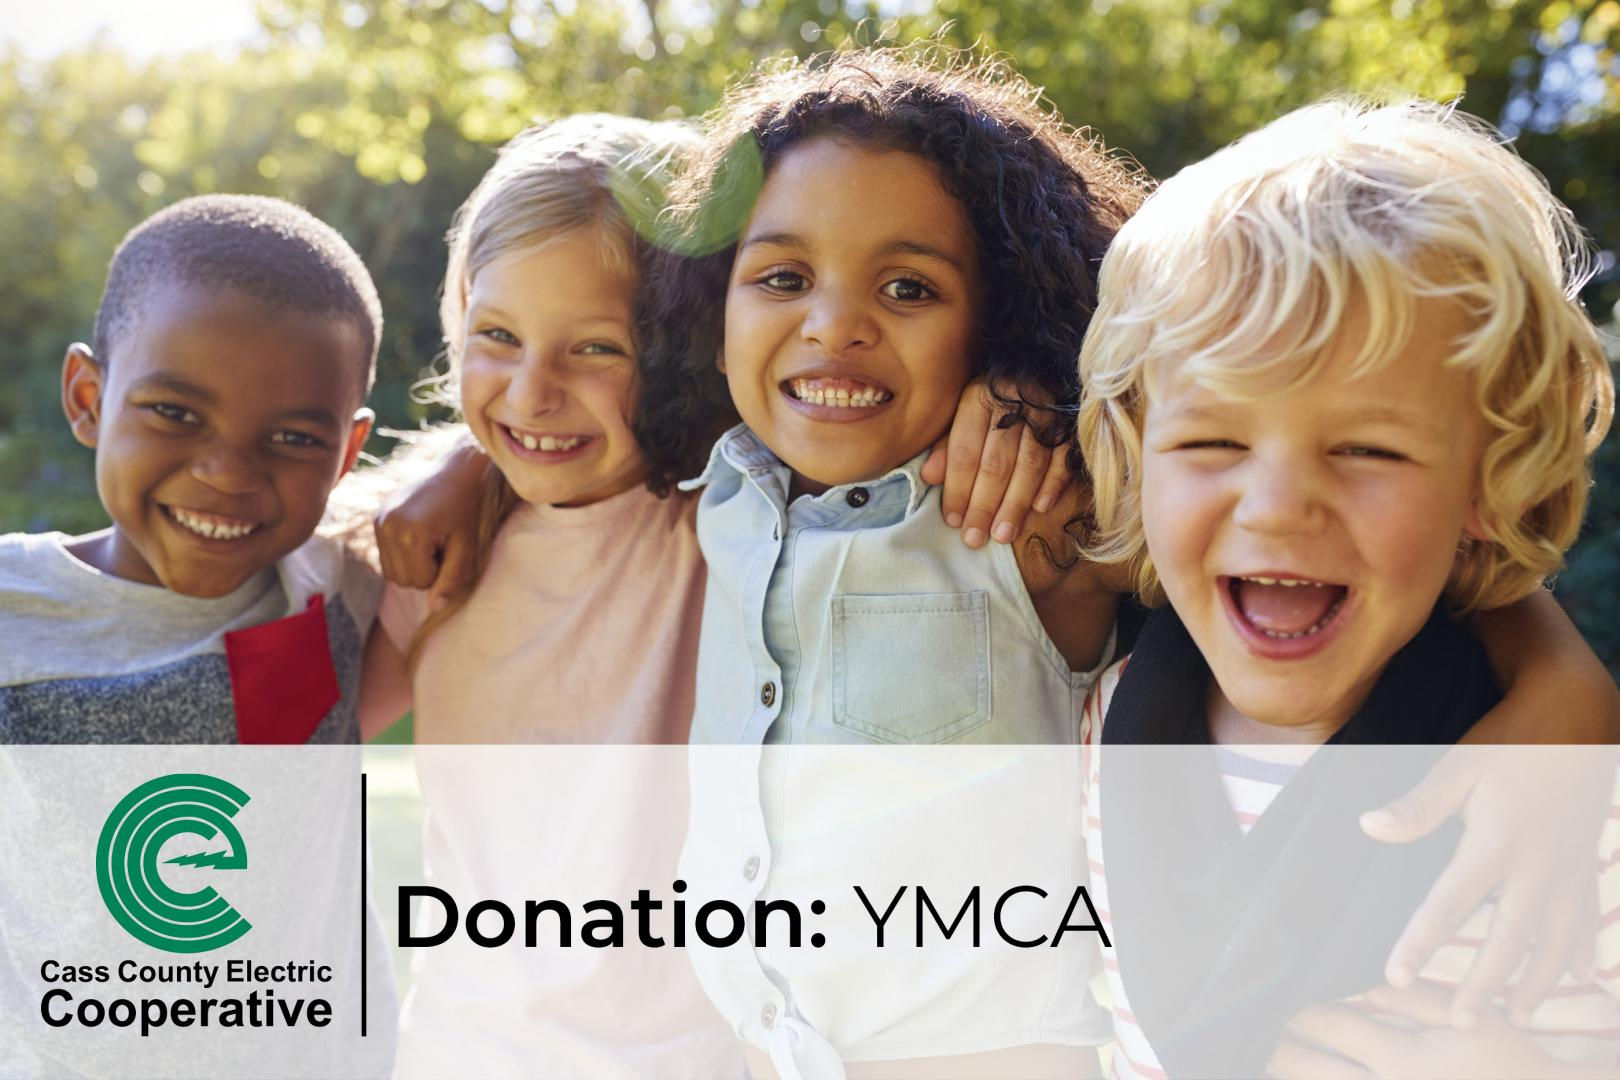 Donation to YMCA